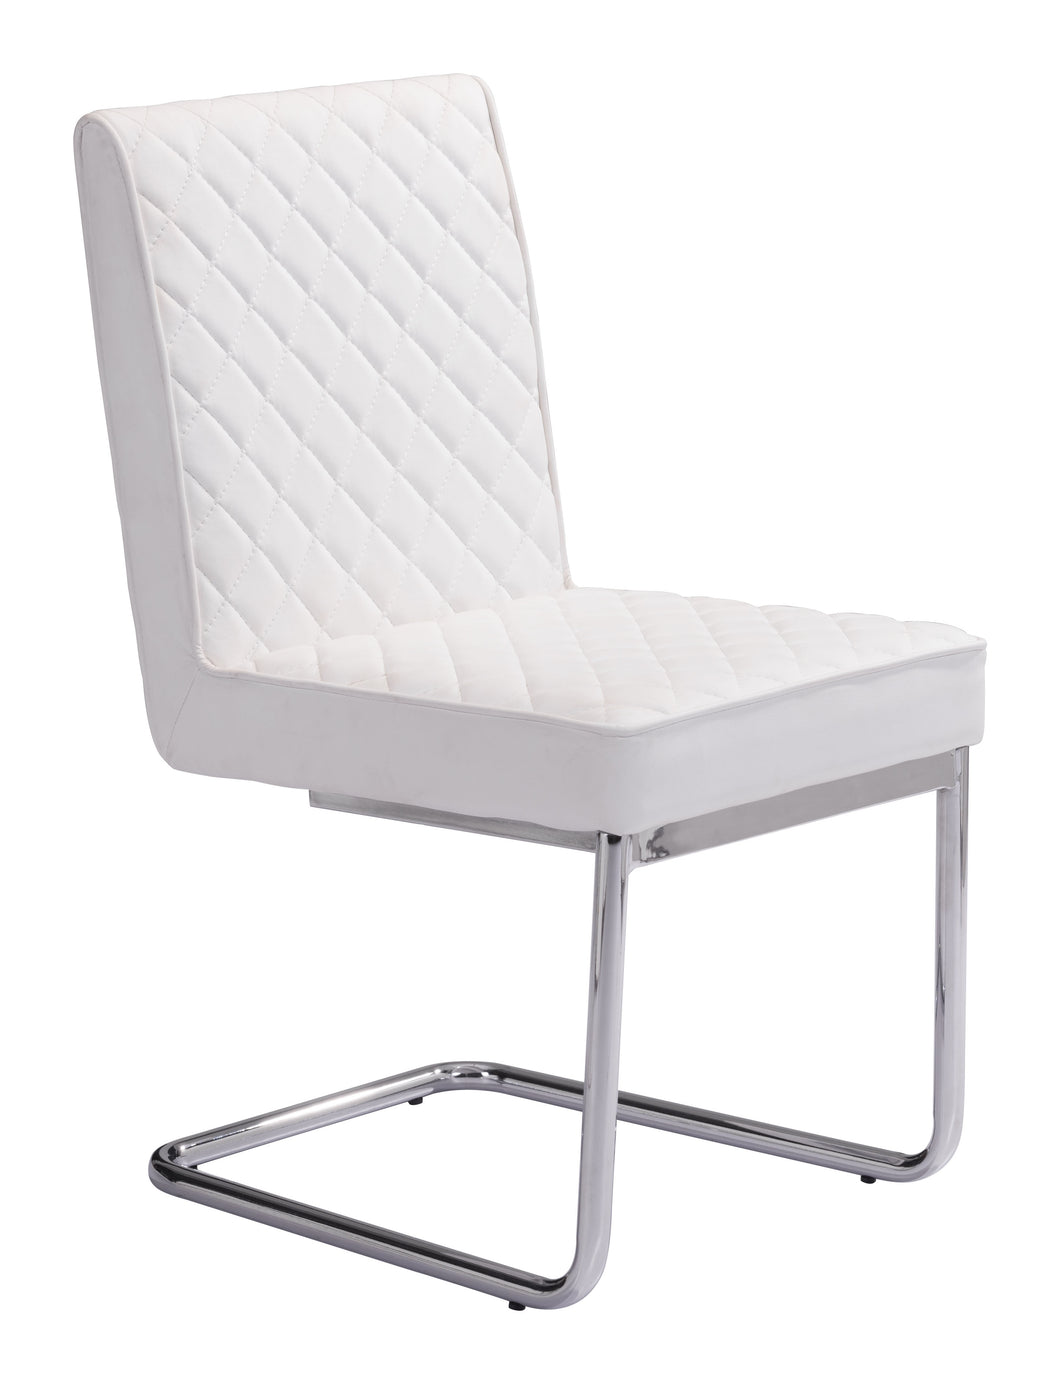 Armless Dining Chair White (Set of 2)